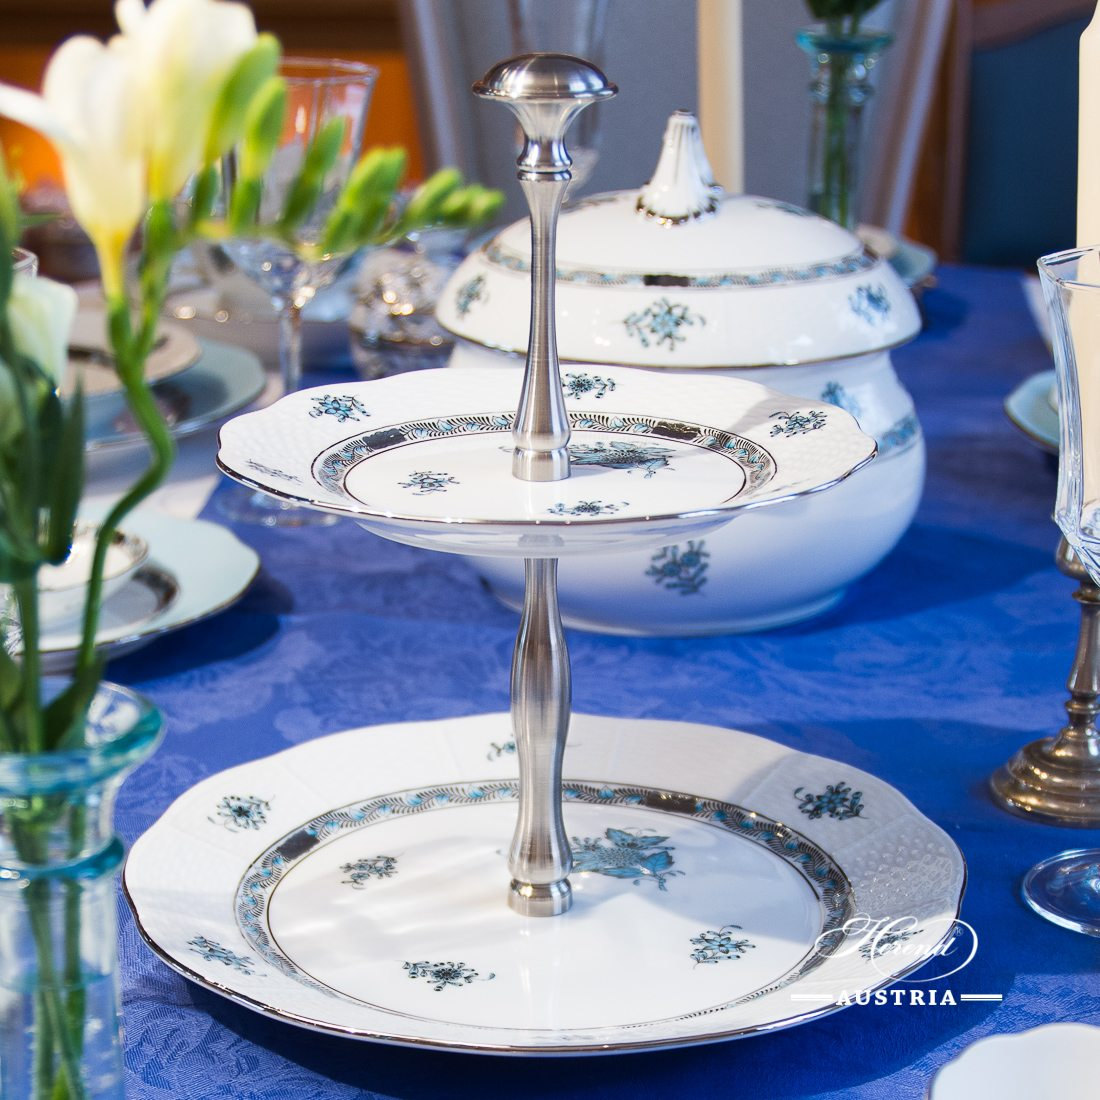 Cake Stand with 2 Tier 308-0-91 ATQ3-PT Chinese Bouquet Turquoise / Apponyi ATQ3-PT pattern. Turquoise w. Platinum design. Herend fine china. Hand painted tableware